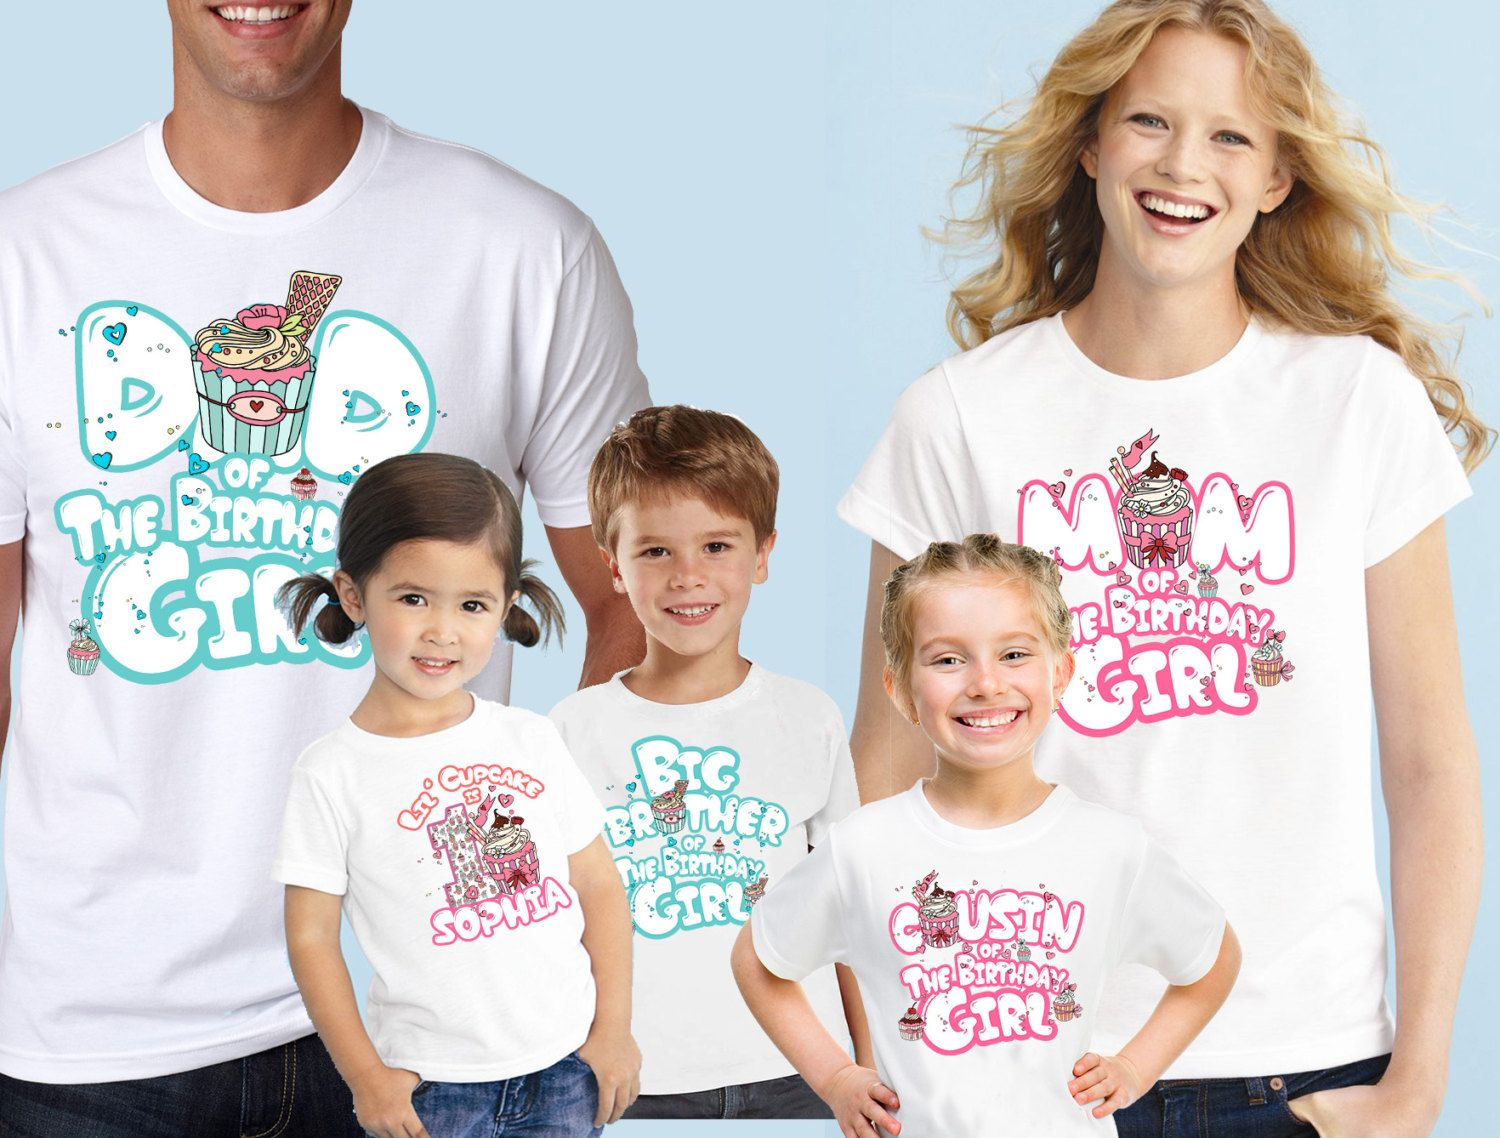 Cupcake Birthday Custom ShirtBoys Girls ShirtBirthday Party T Shirts Now For Parents And Family Members Fast Shipping By DatShirts On Etsy